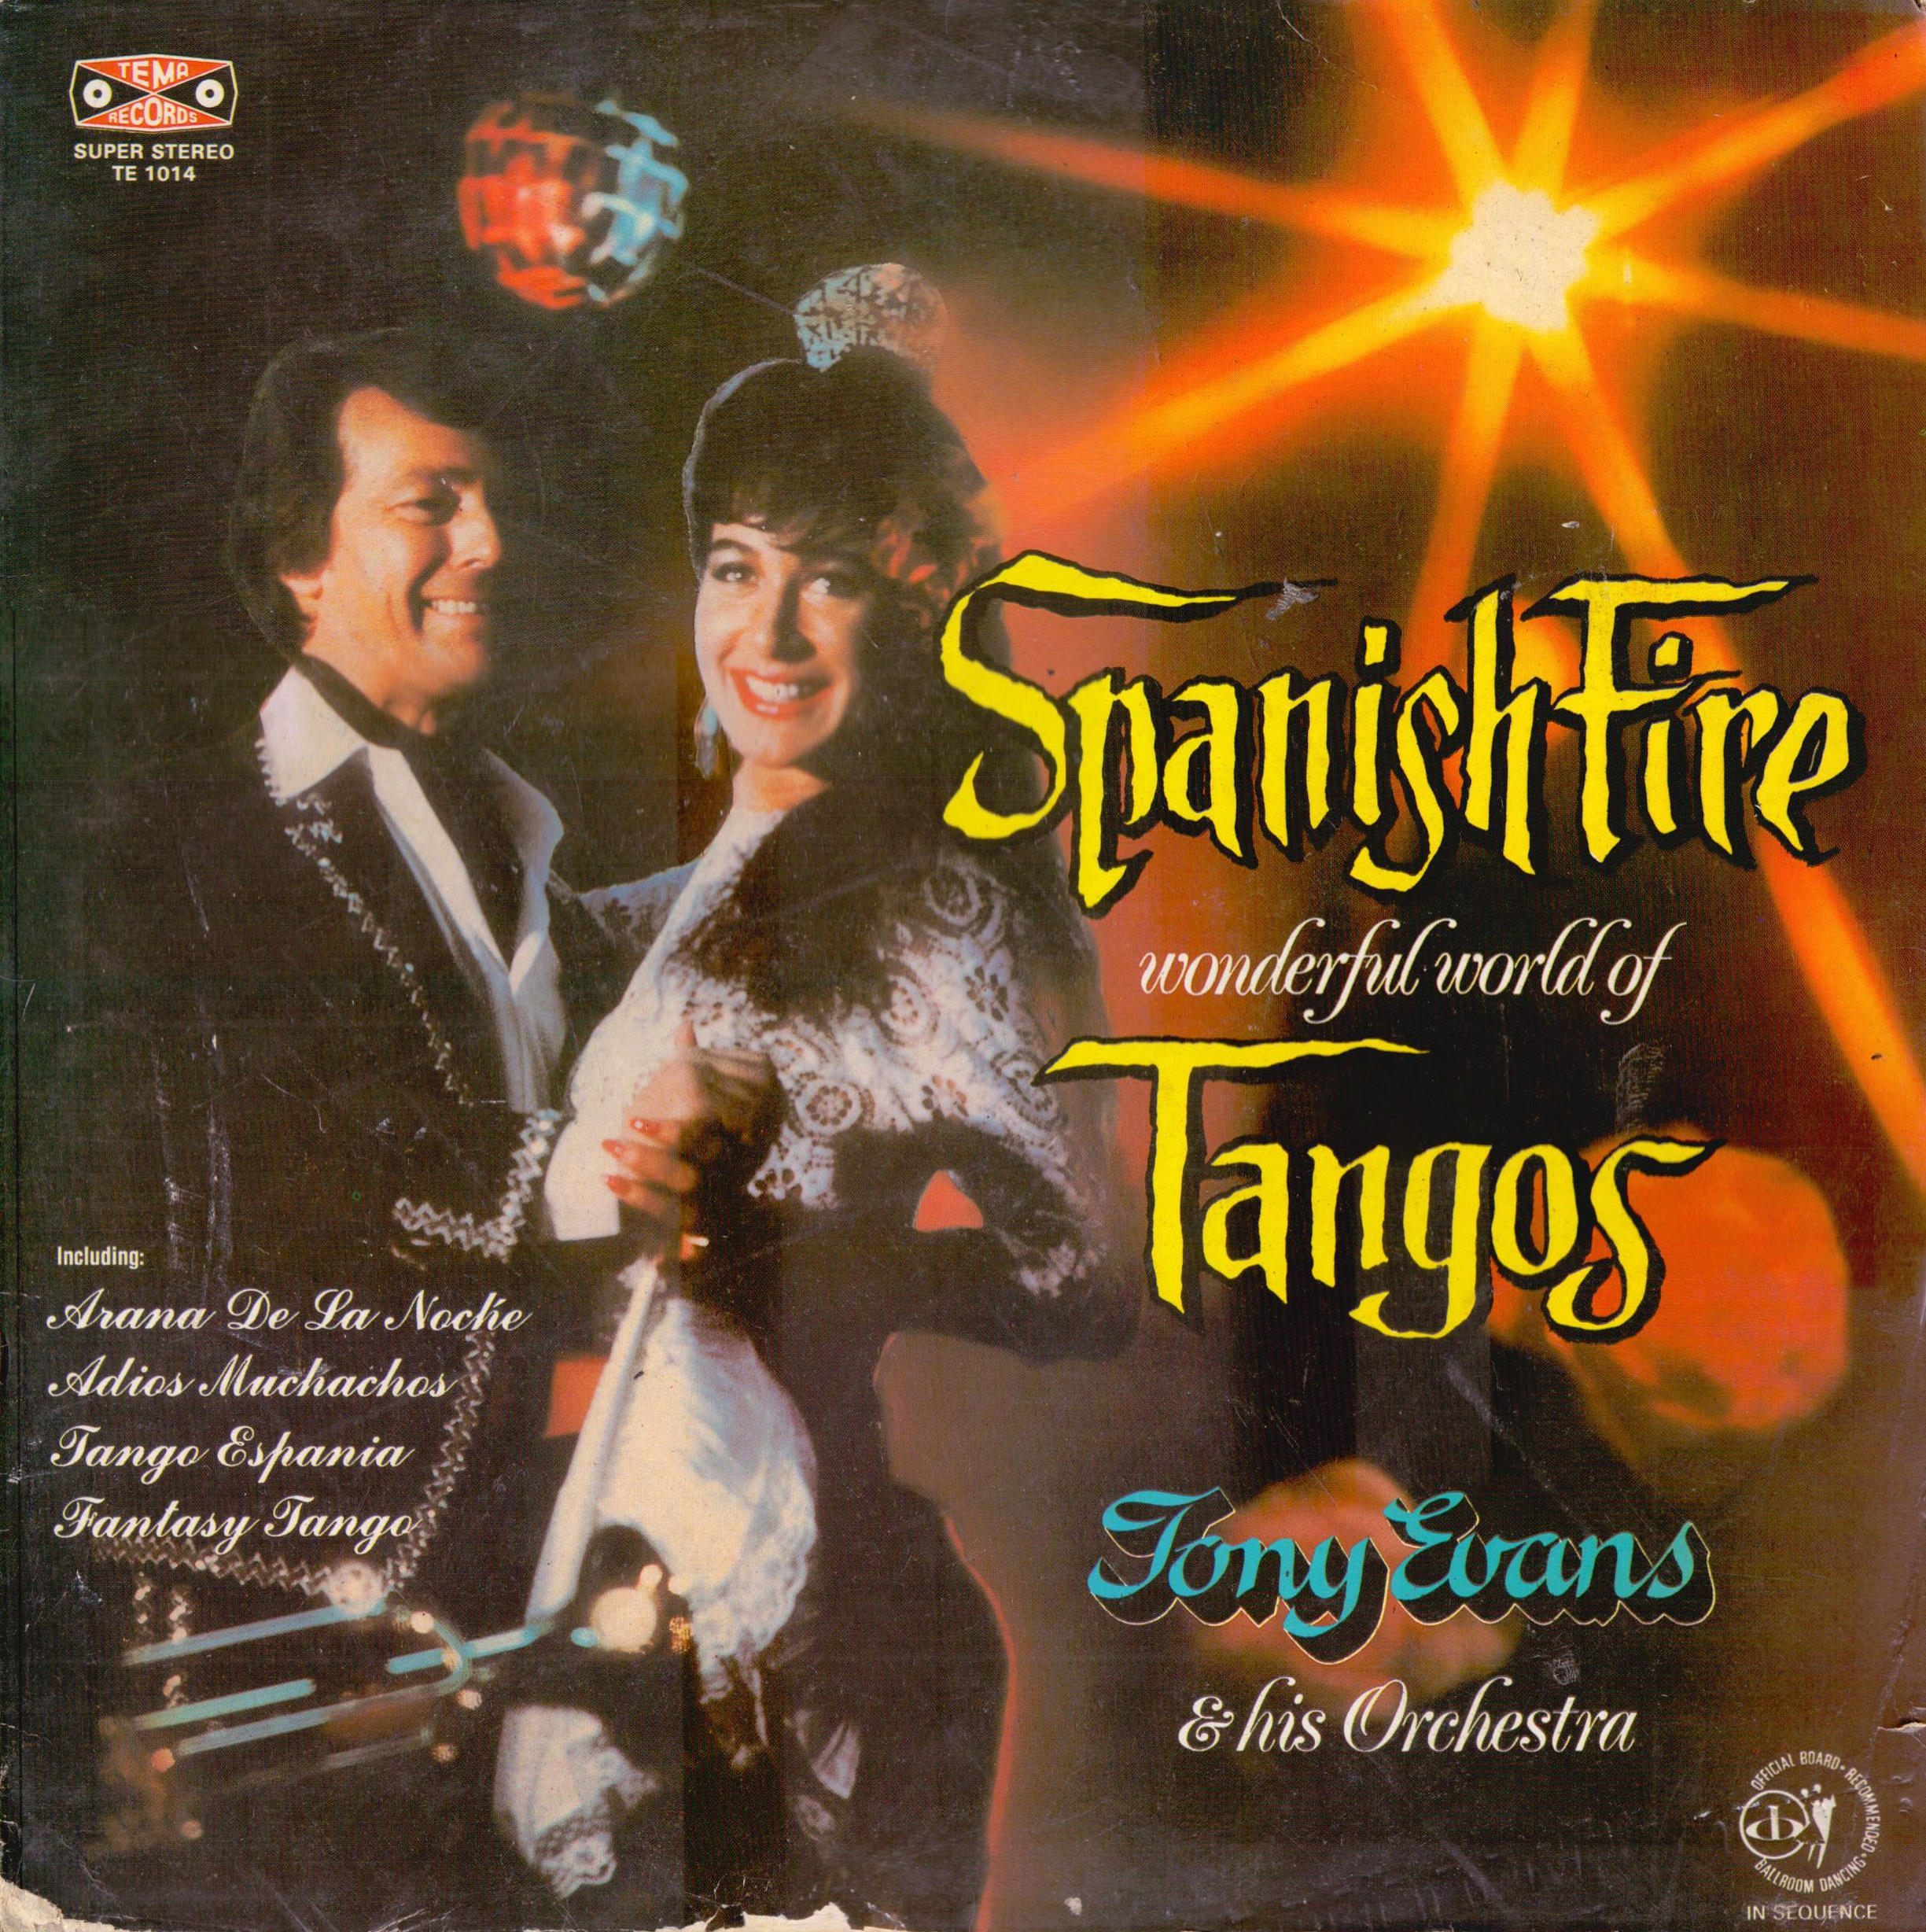 TONY EVANS AND HIS ORCHESTRA - Spanish Fire - Wonderful World Of Tangos - 33T